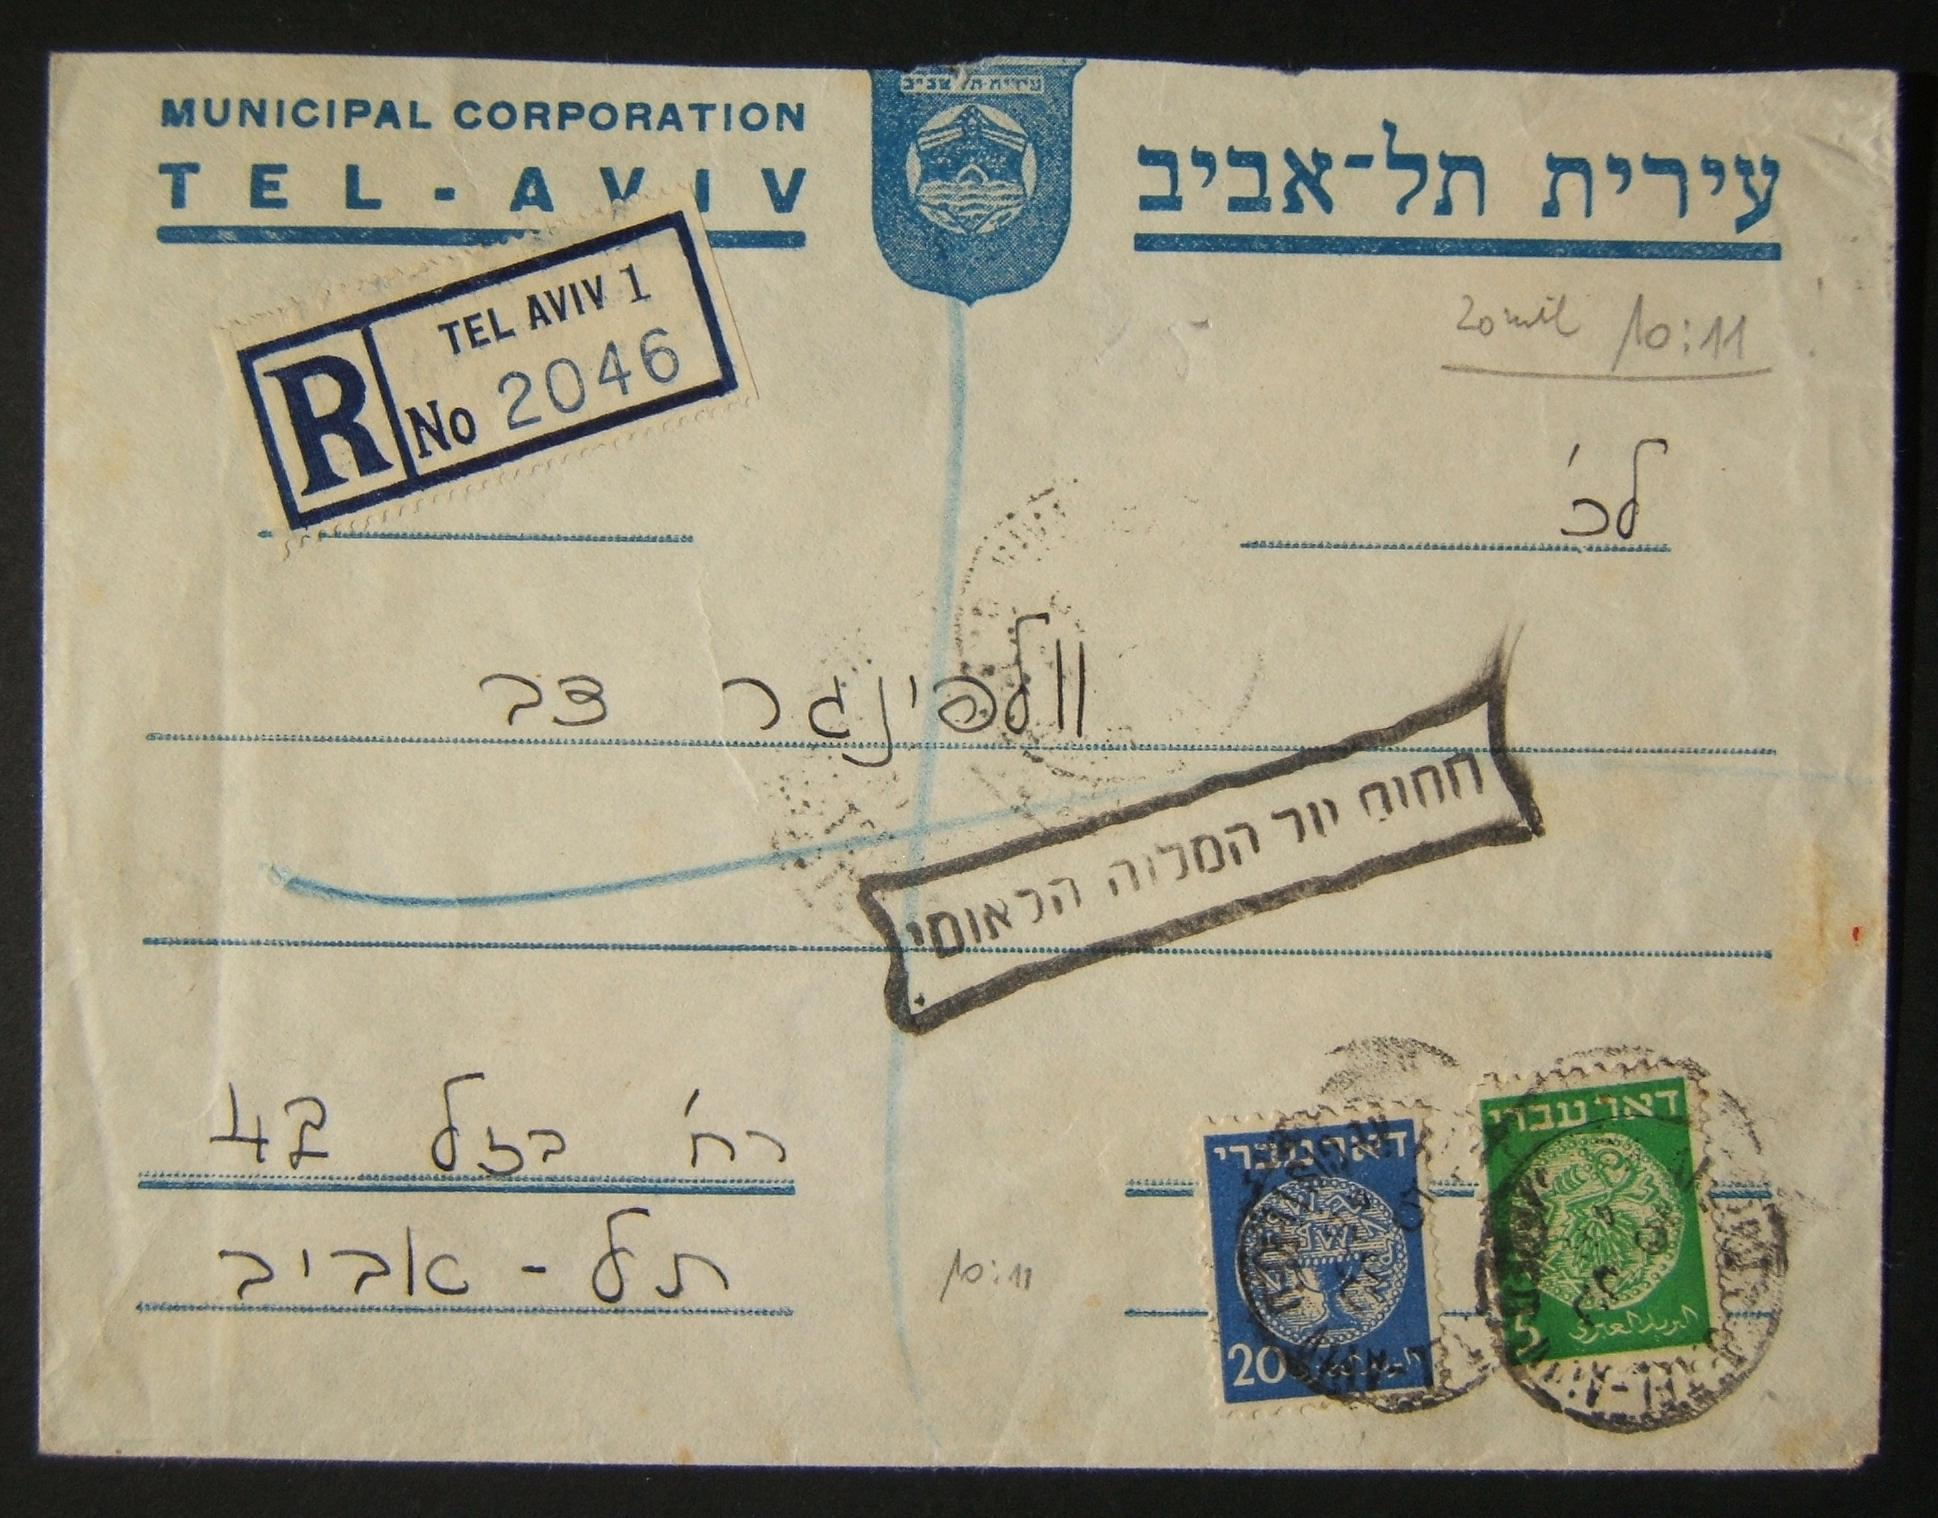 10-06-1948 TEL AVIV registered mail with mixed perforation franking + Mandate postmark